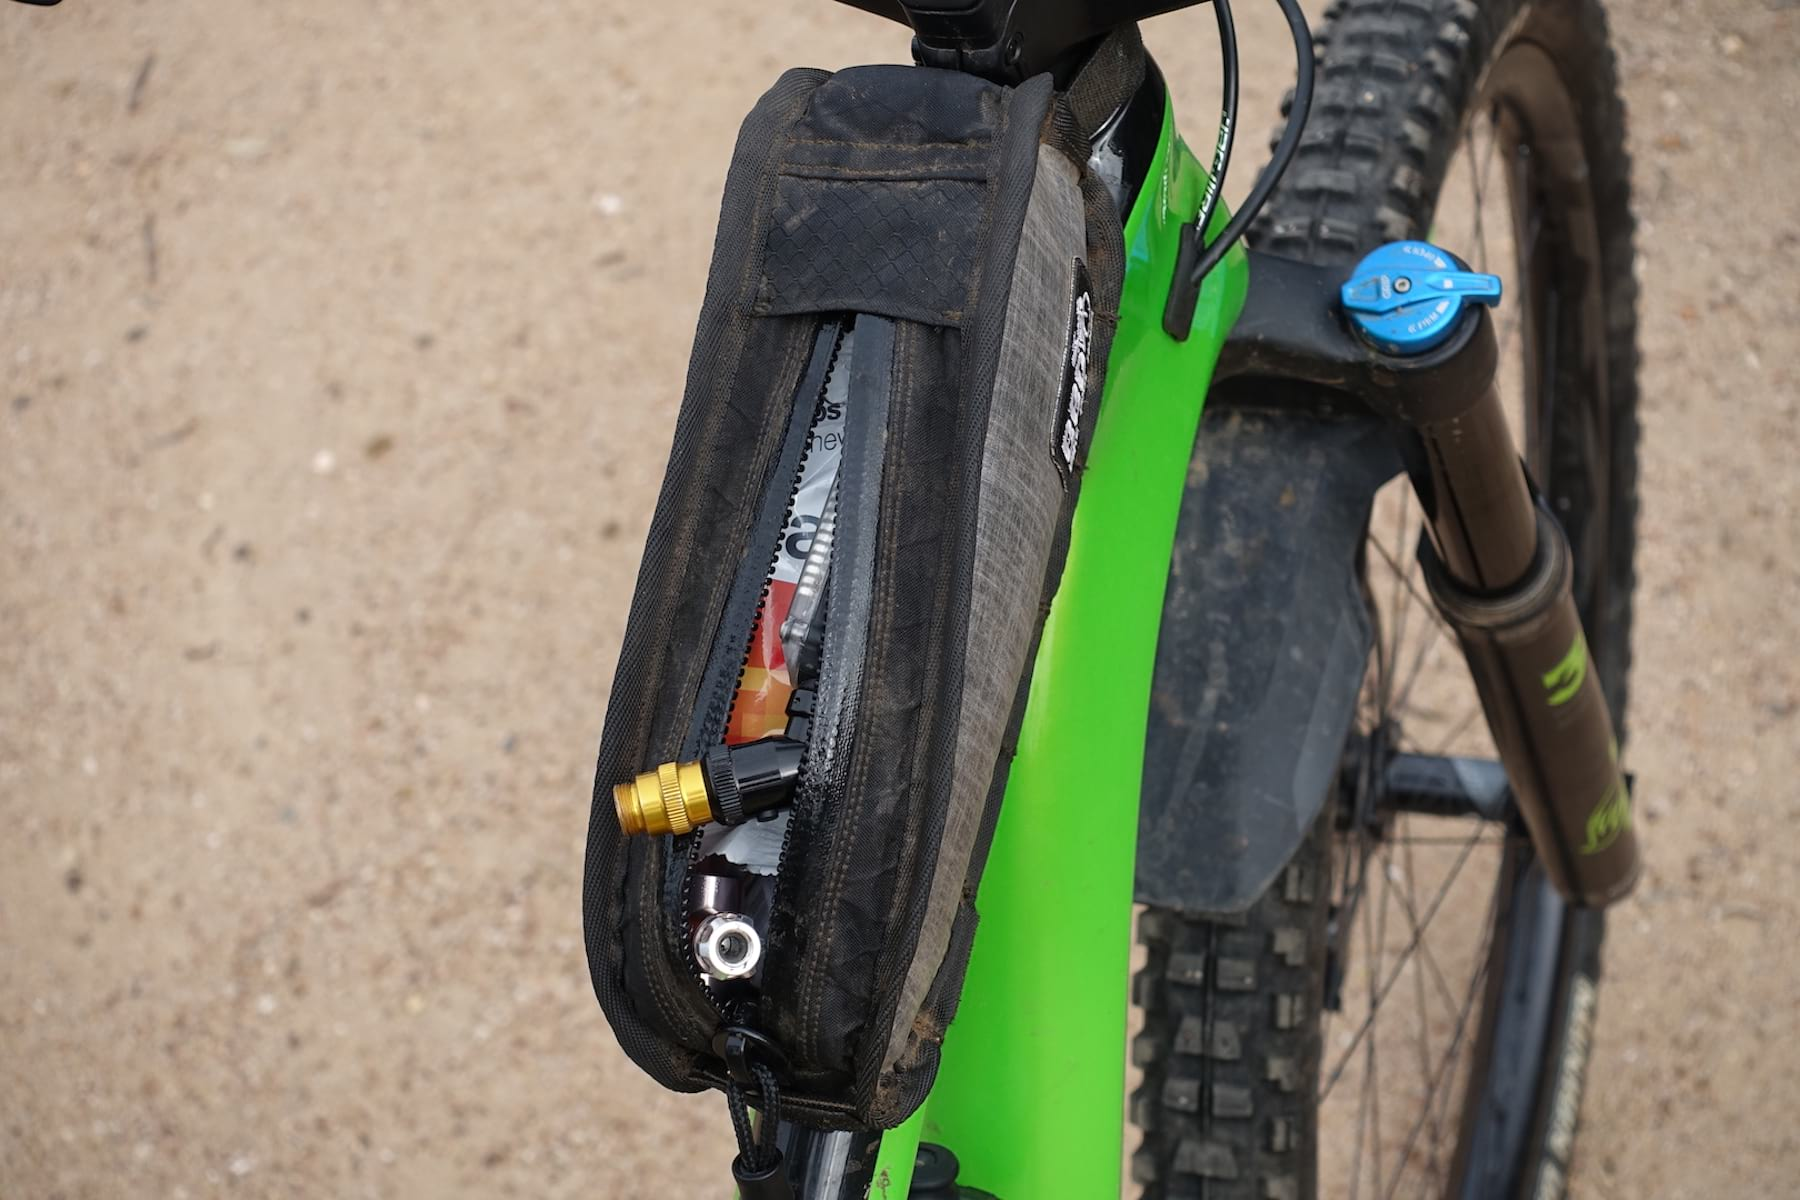 Review | The Top Tube Mini Garage Pack from Bike Bag Dude